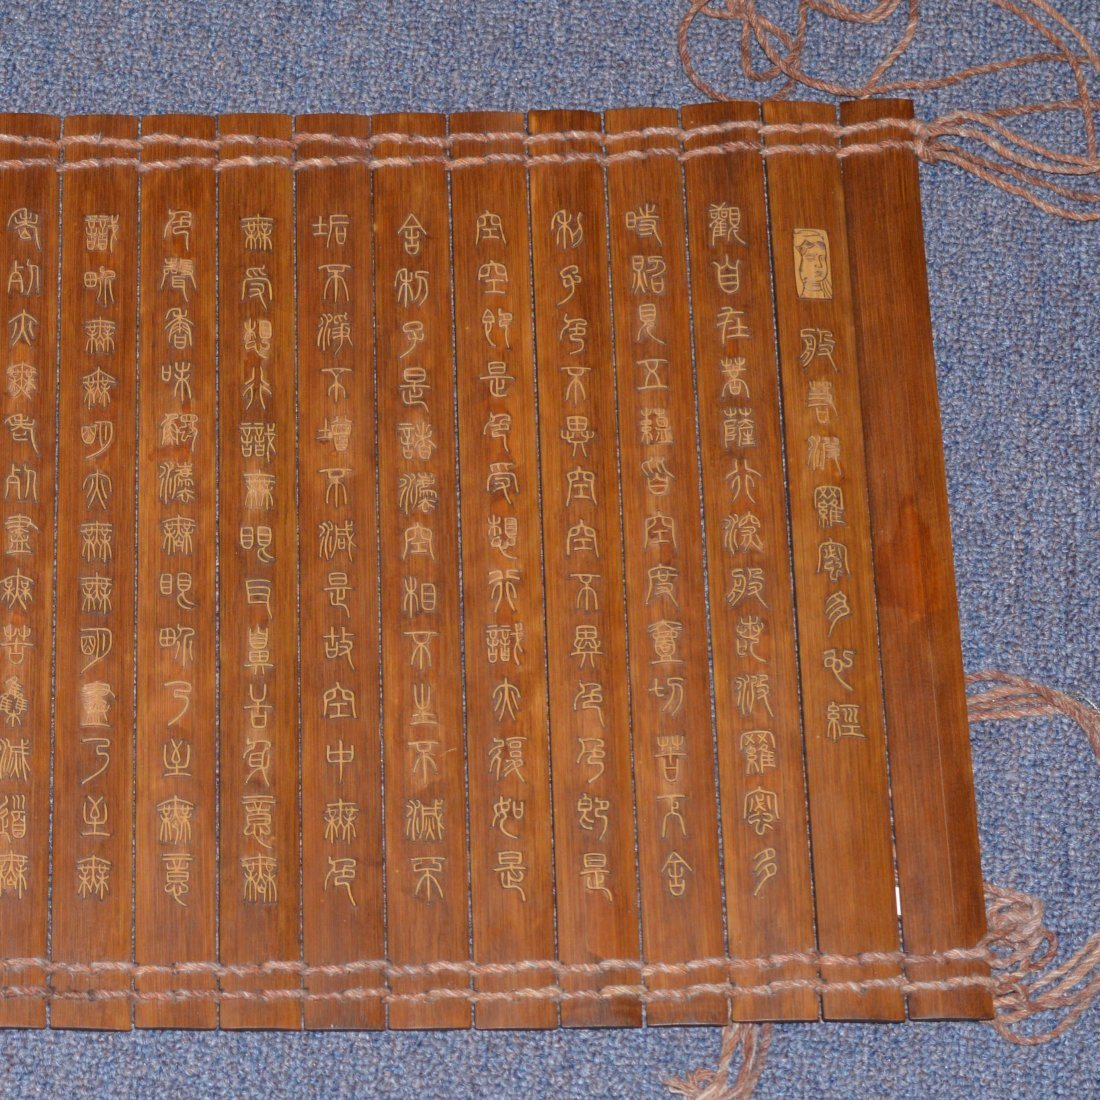 Bamboo carving of The heart Sutra